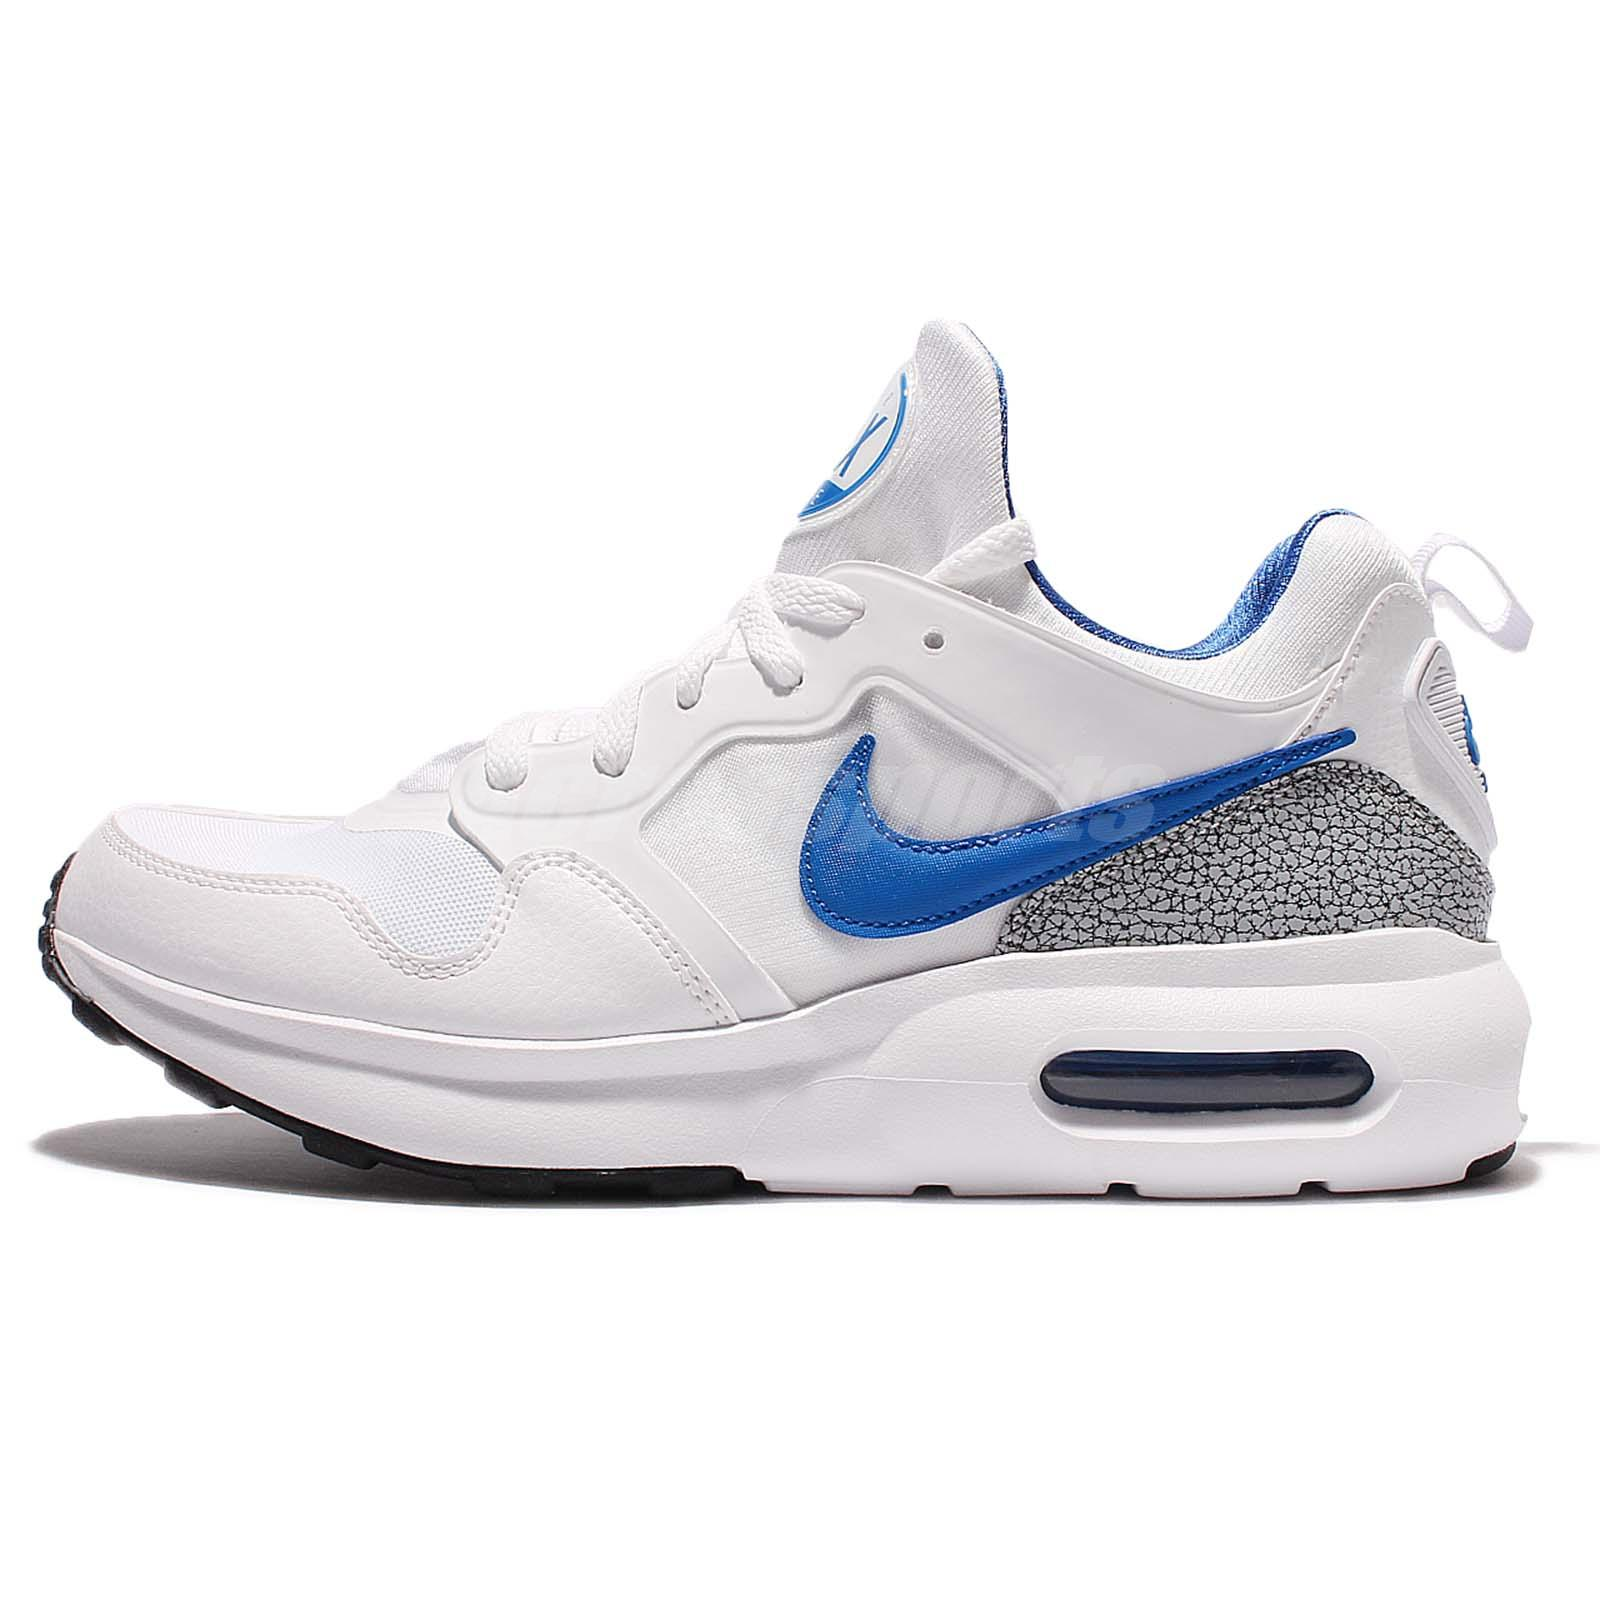 nike air max shoes thailand prime